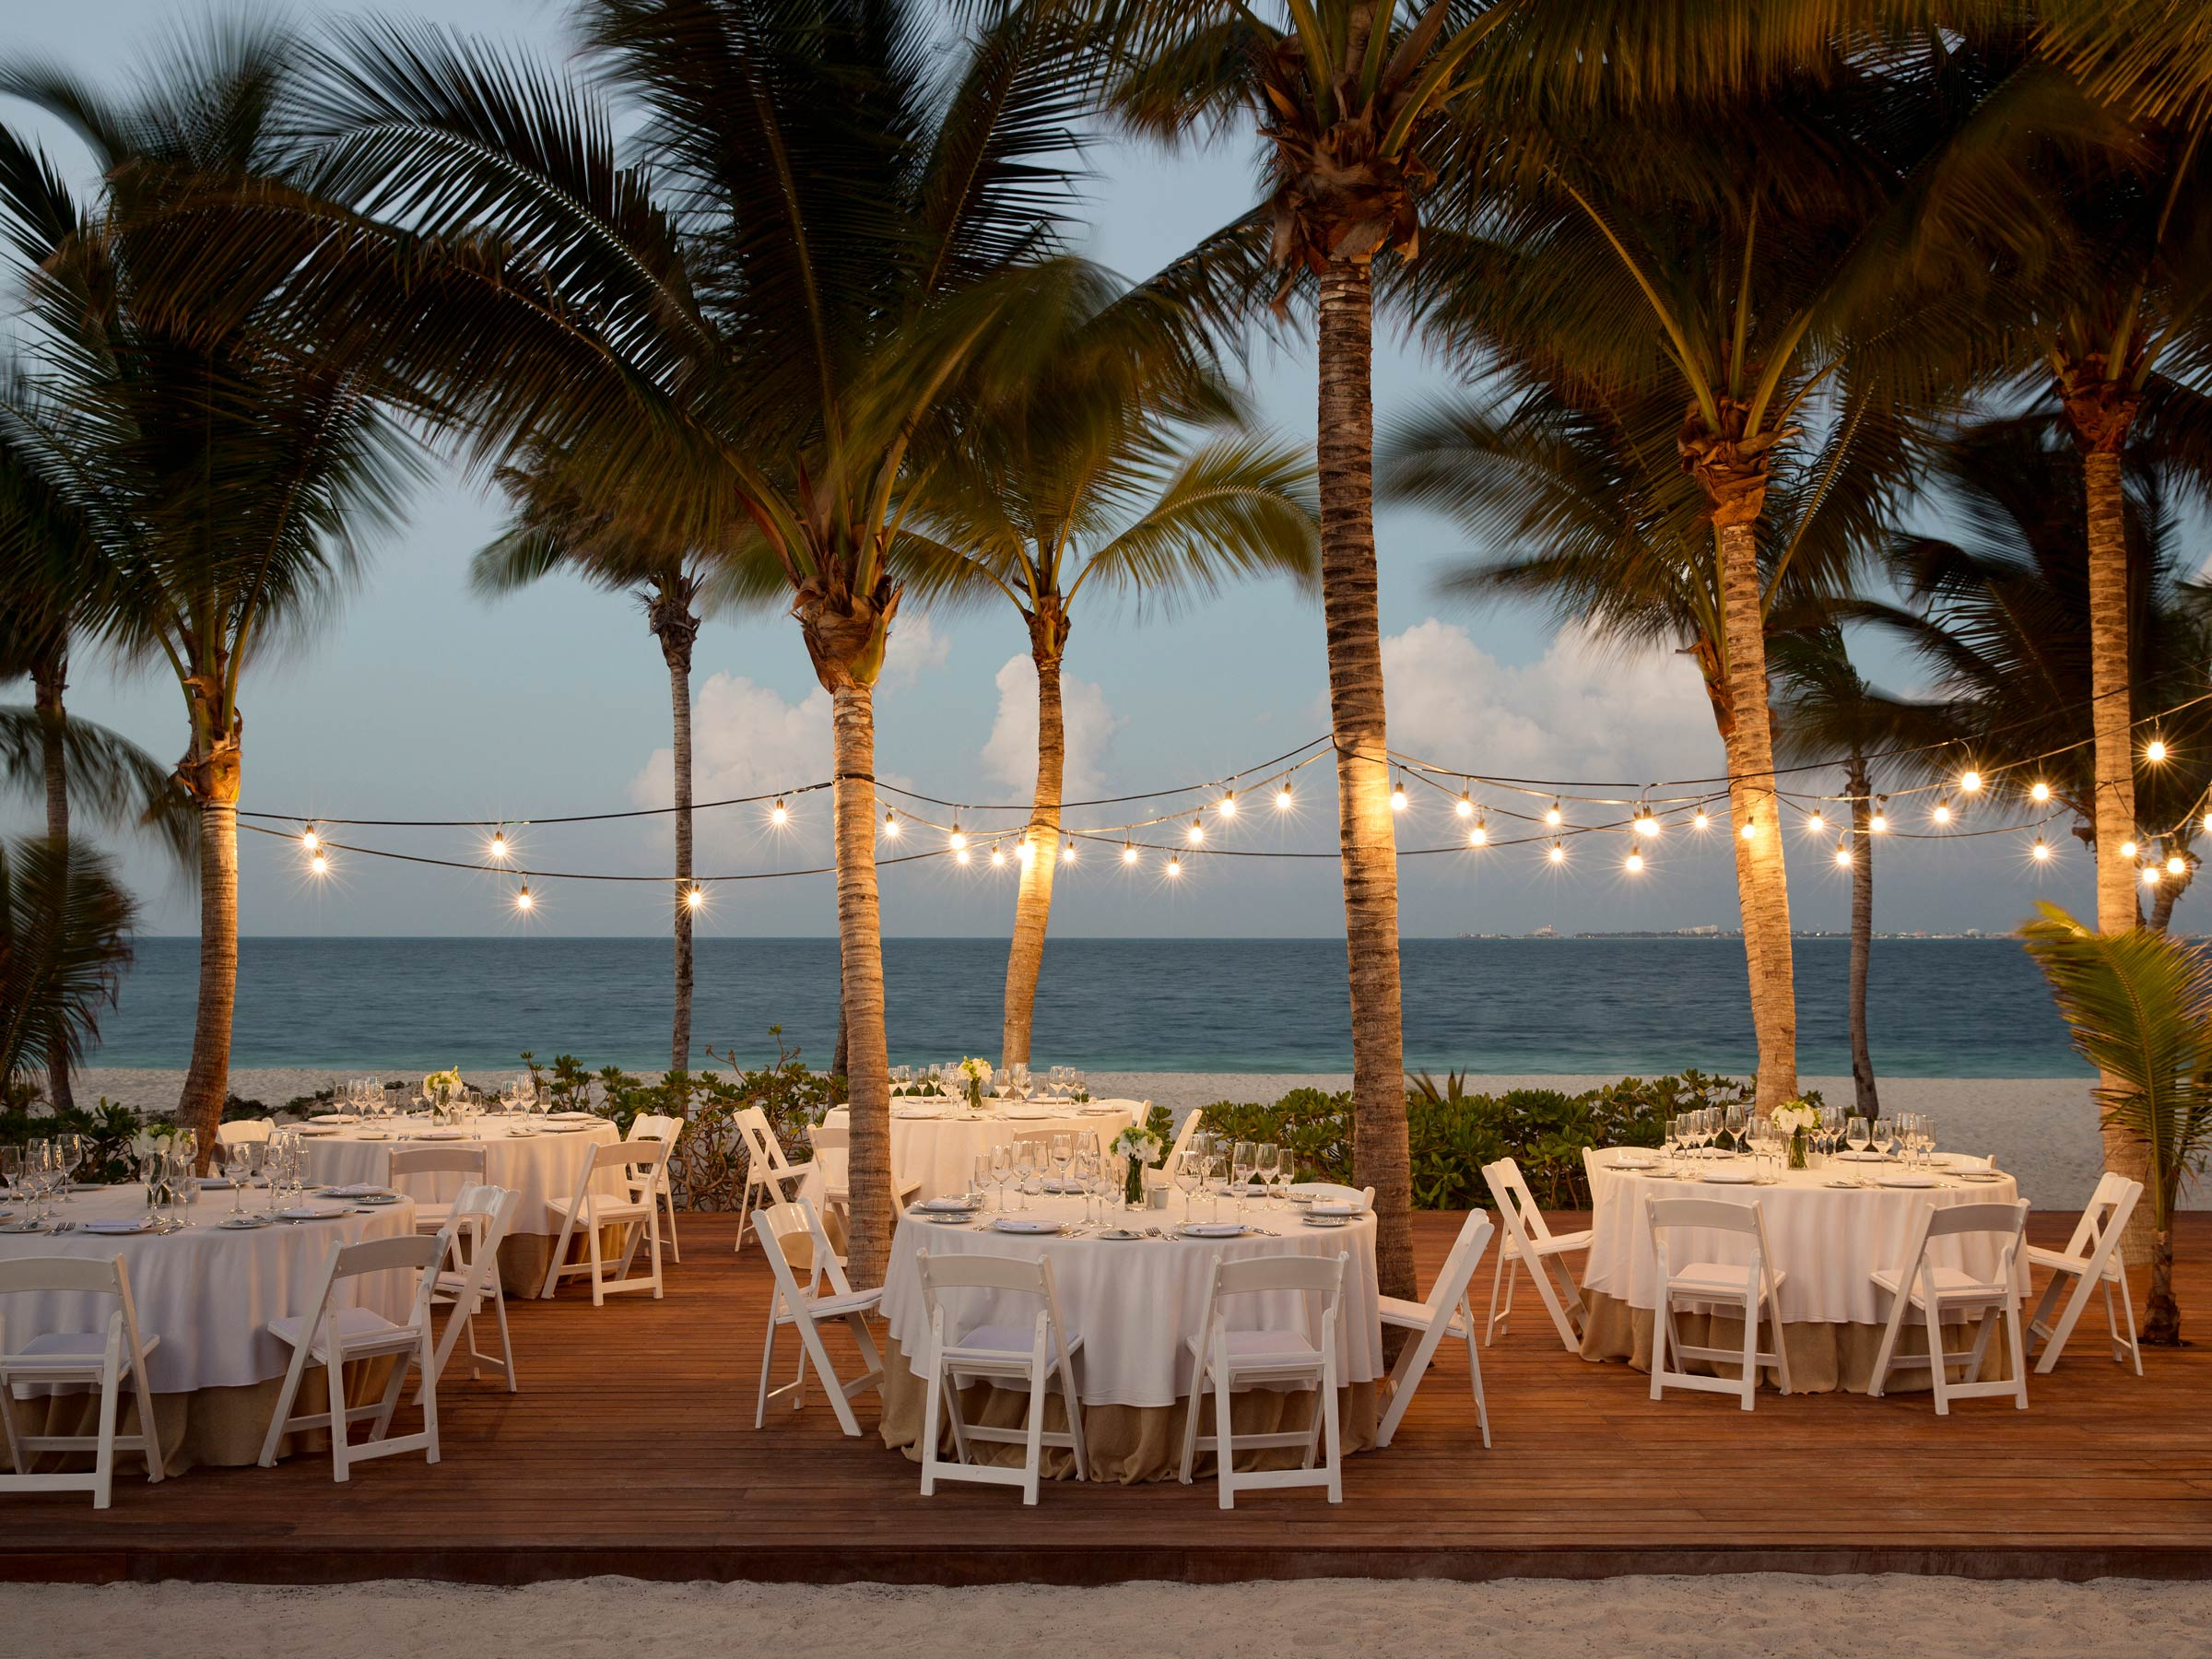 Evening Beach Wedding Reception in Cancun